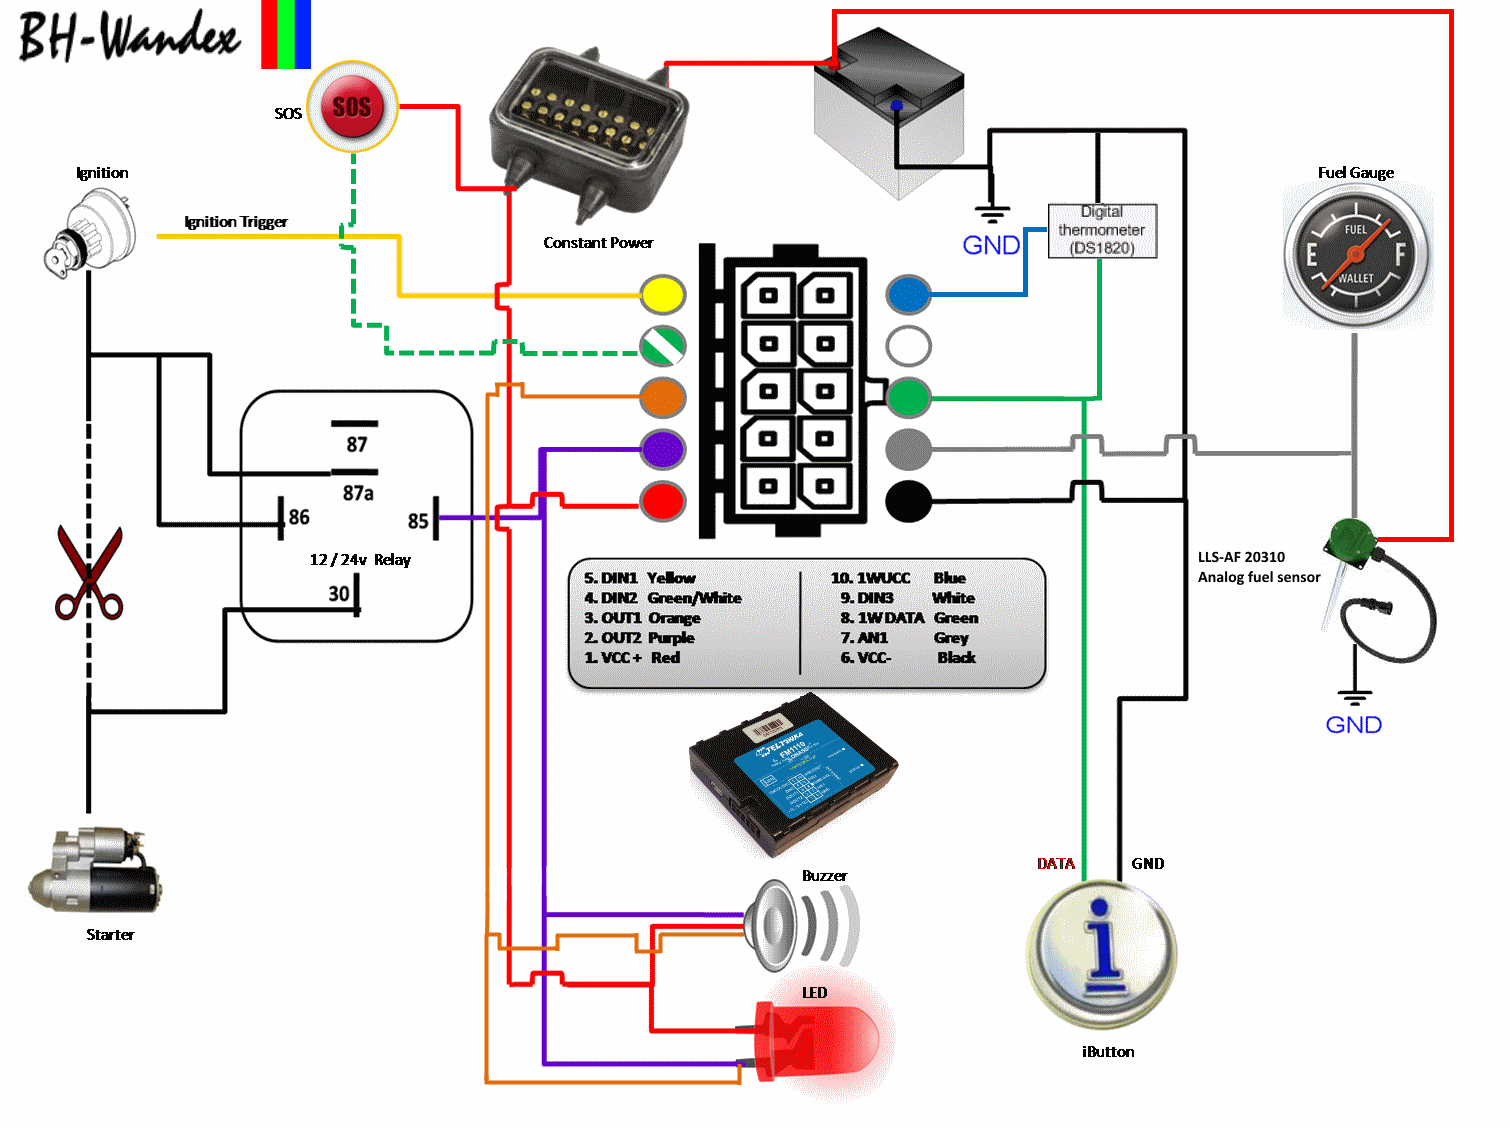 ca%C5%82o%C5%9B%C4%87 lokalizator samochodowy Basic Electrical Wiring Diagrams at aneh.co